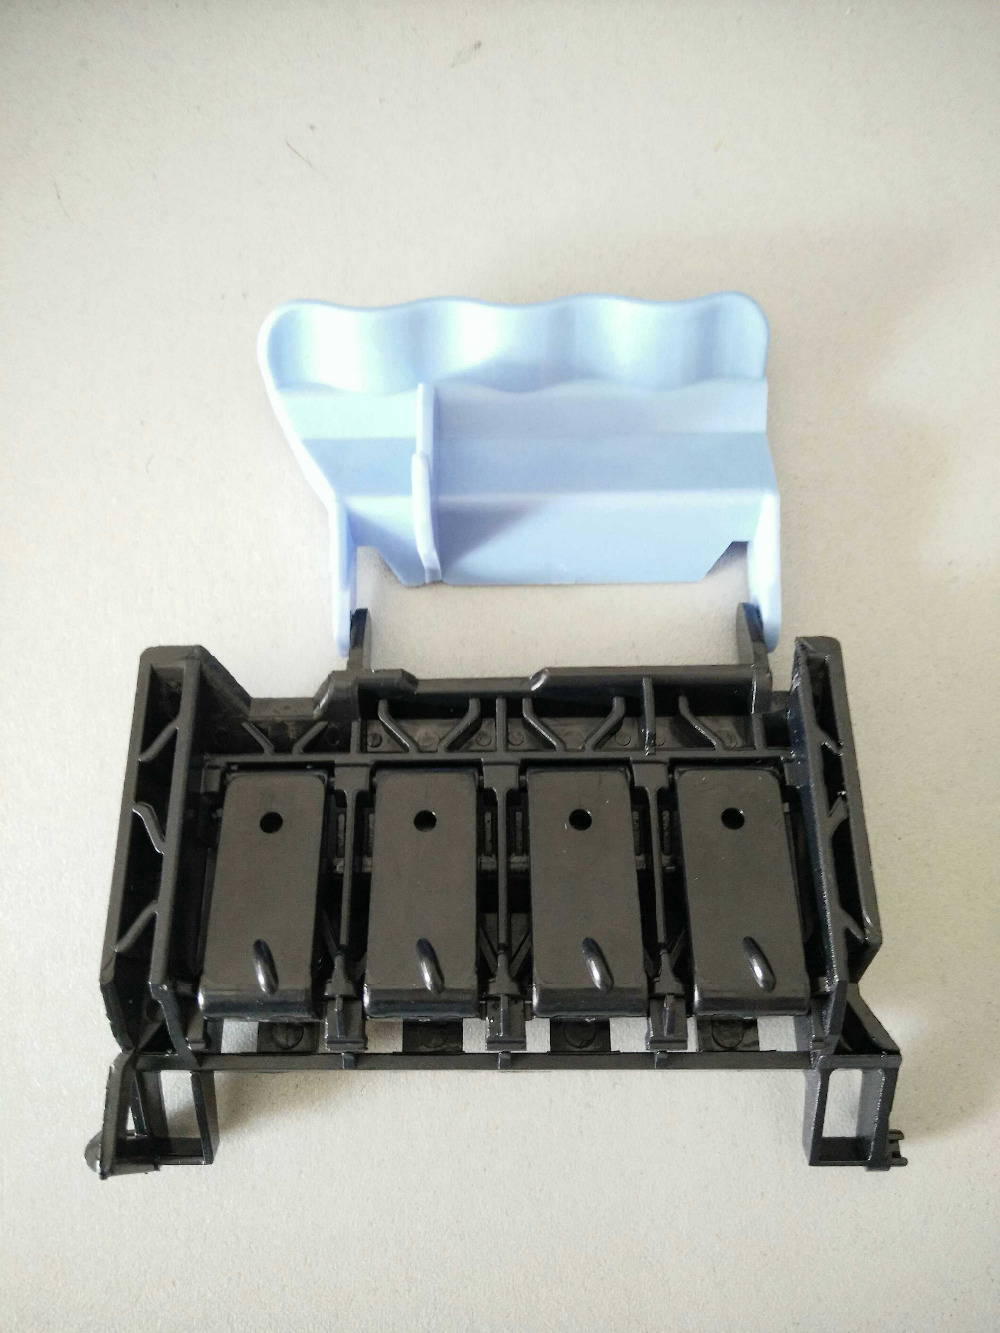 C7769-69376 Printhead Carriage Assembly Cover For HP Plotter 500 800 510 Printer Upper Head Cover c7769 60151 printhead carriage assembly for designjet 500 510 800 ps c7769 69376 ink plotter printer parts